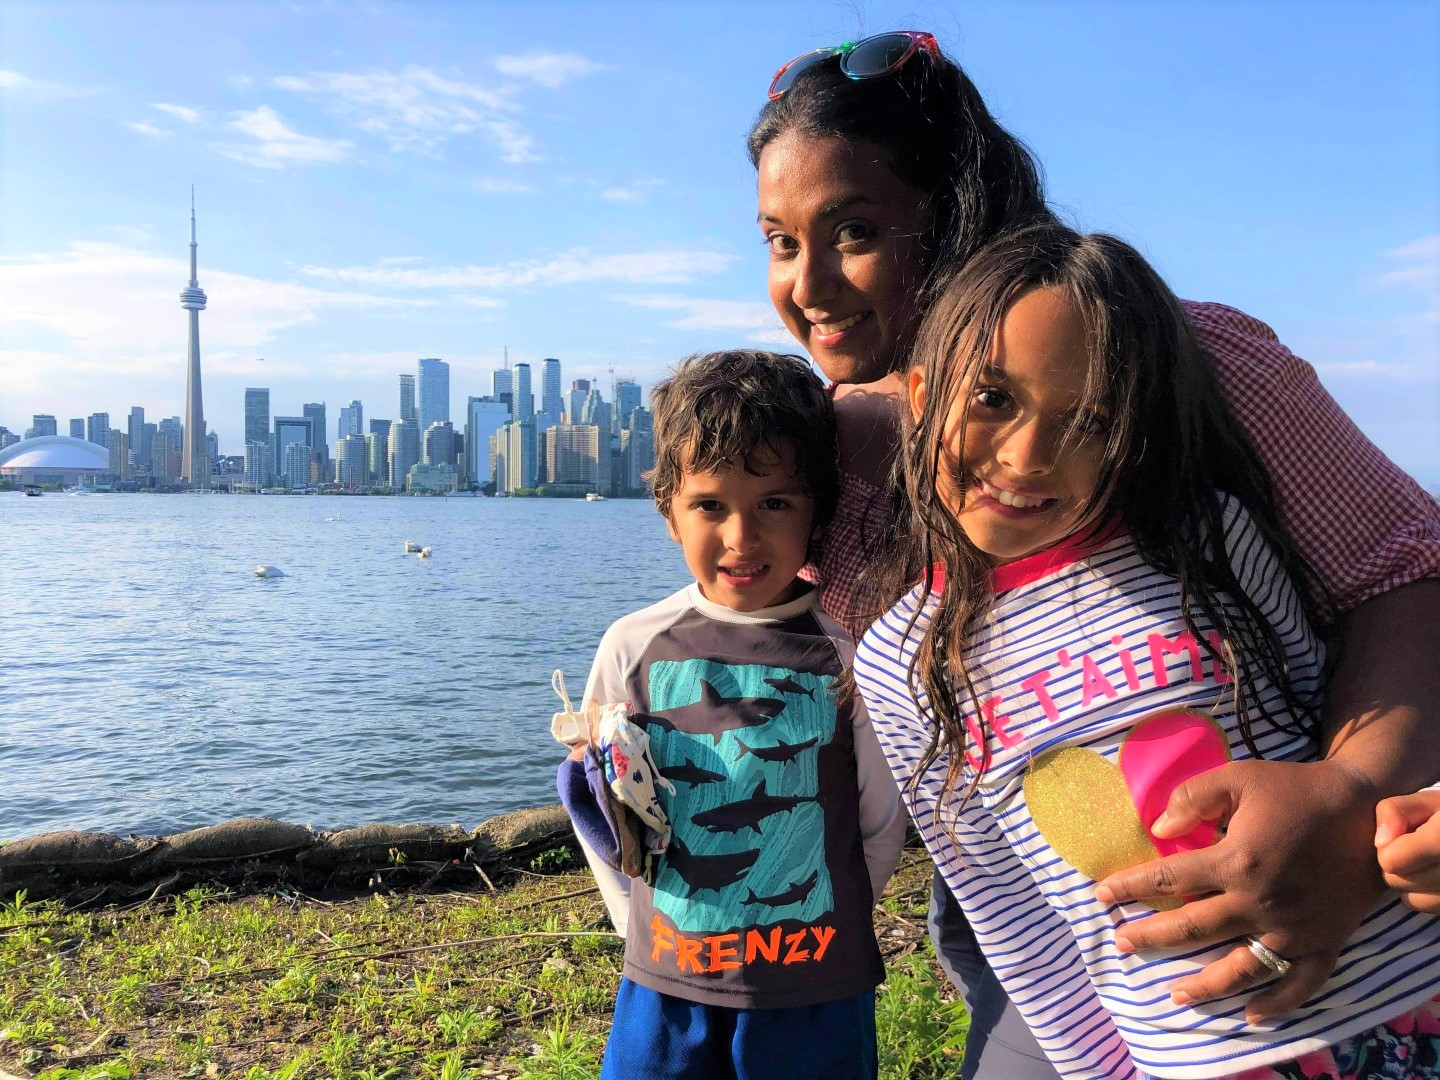 a day on the Toronto Islands during a pandemic